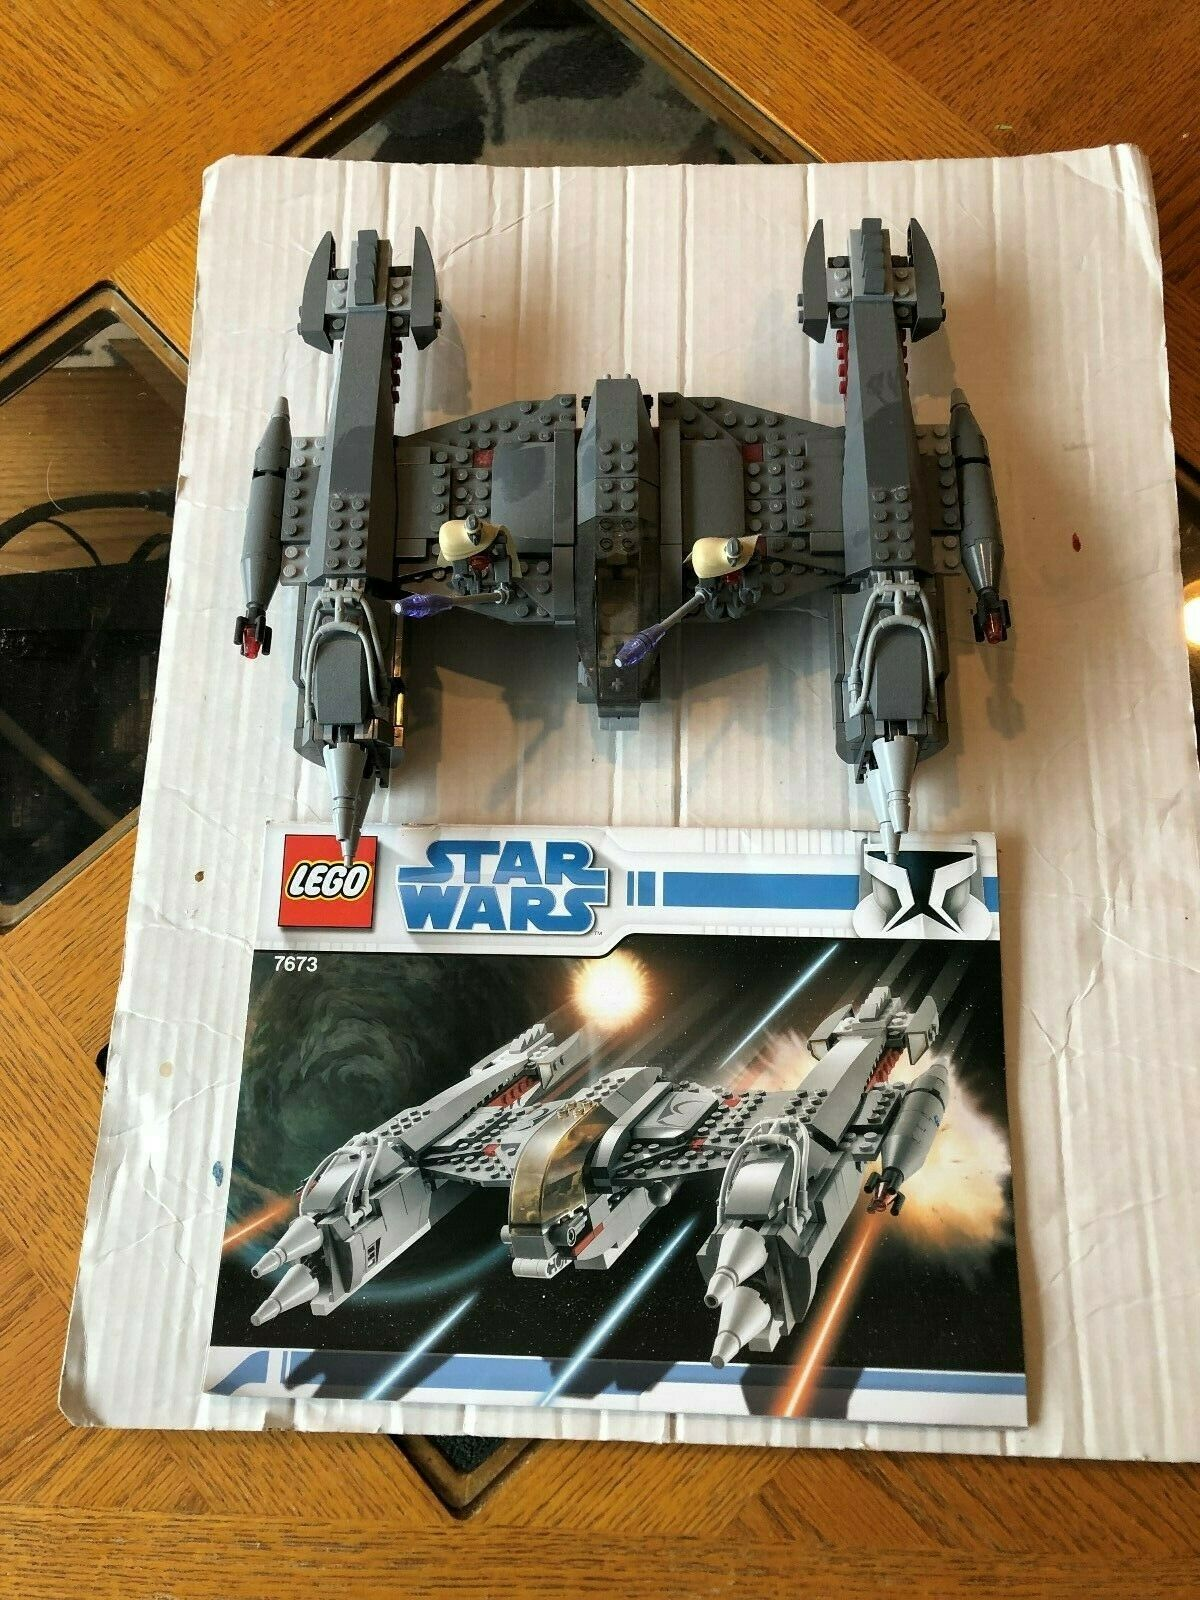 Lego Star Wars MagnaGuard Starfighter (7673) - Complete Complete Complete Set W Instruction No Box 102ba1